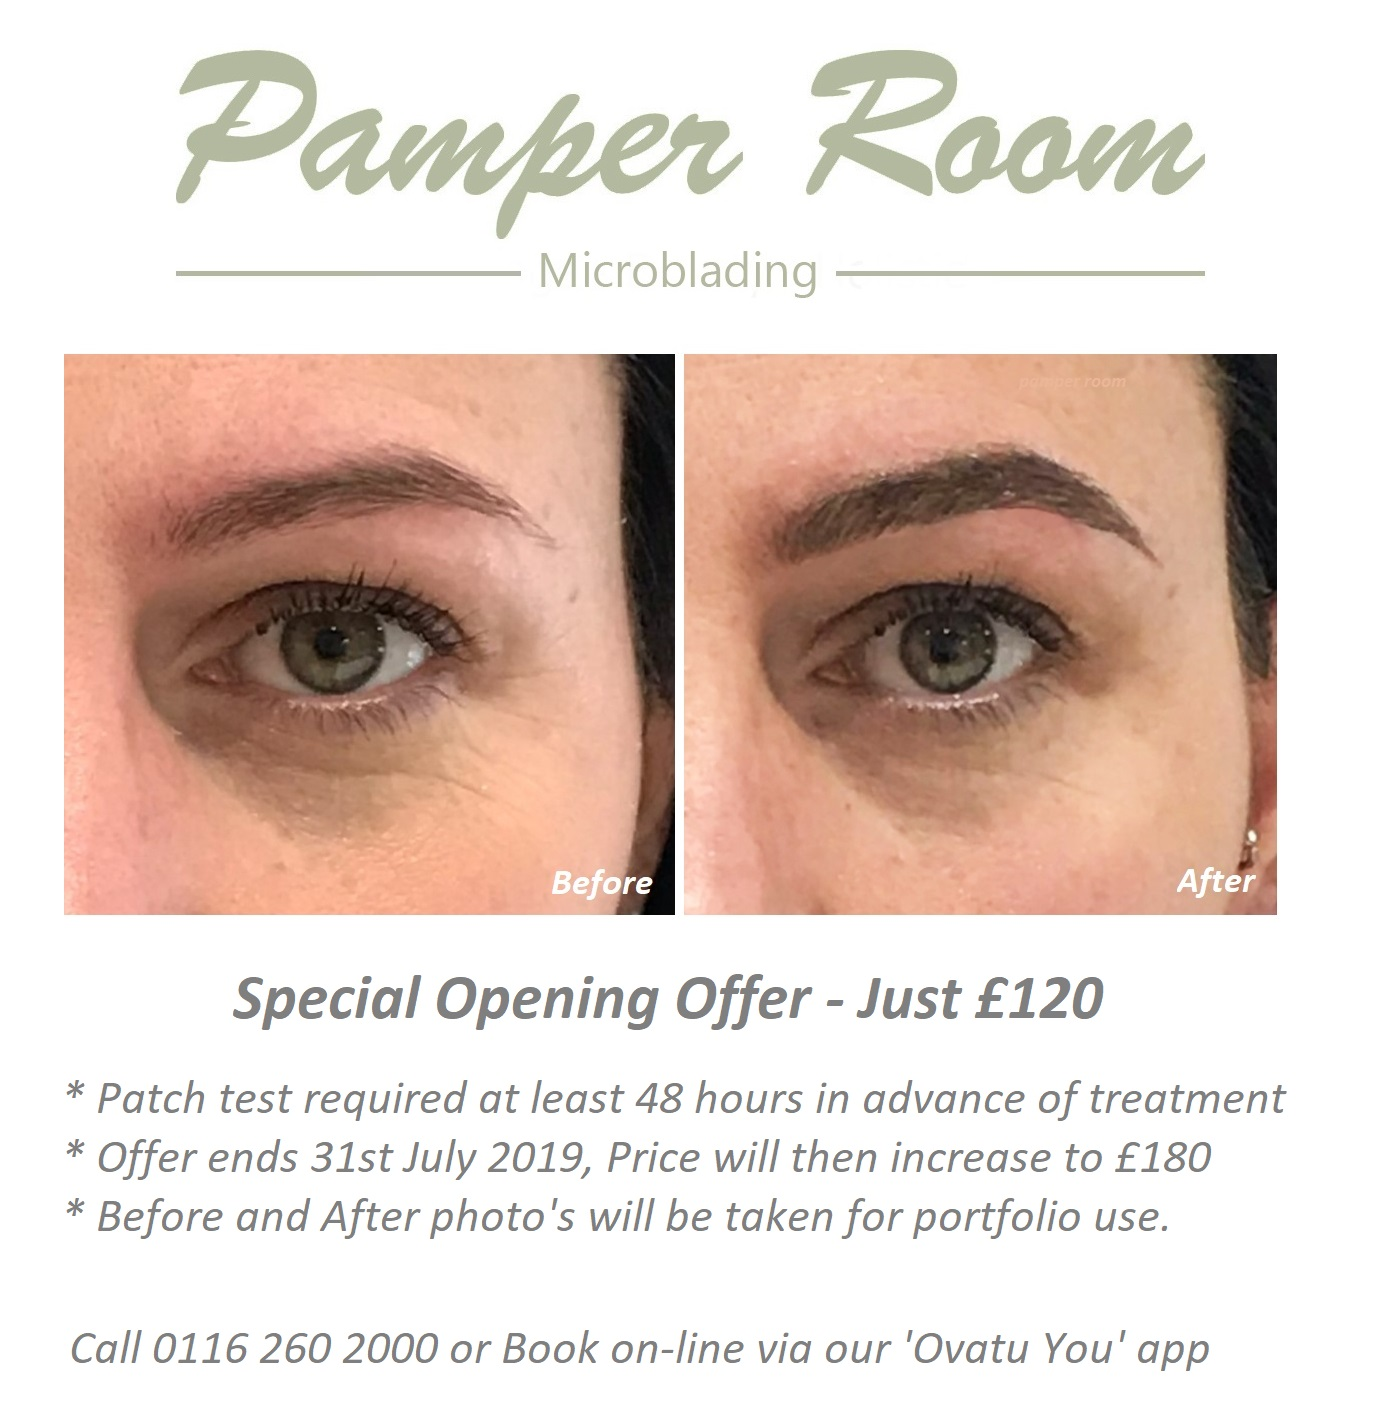 Pamper Room Microblading